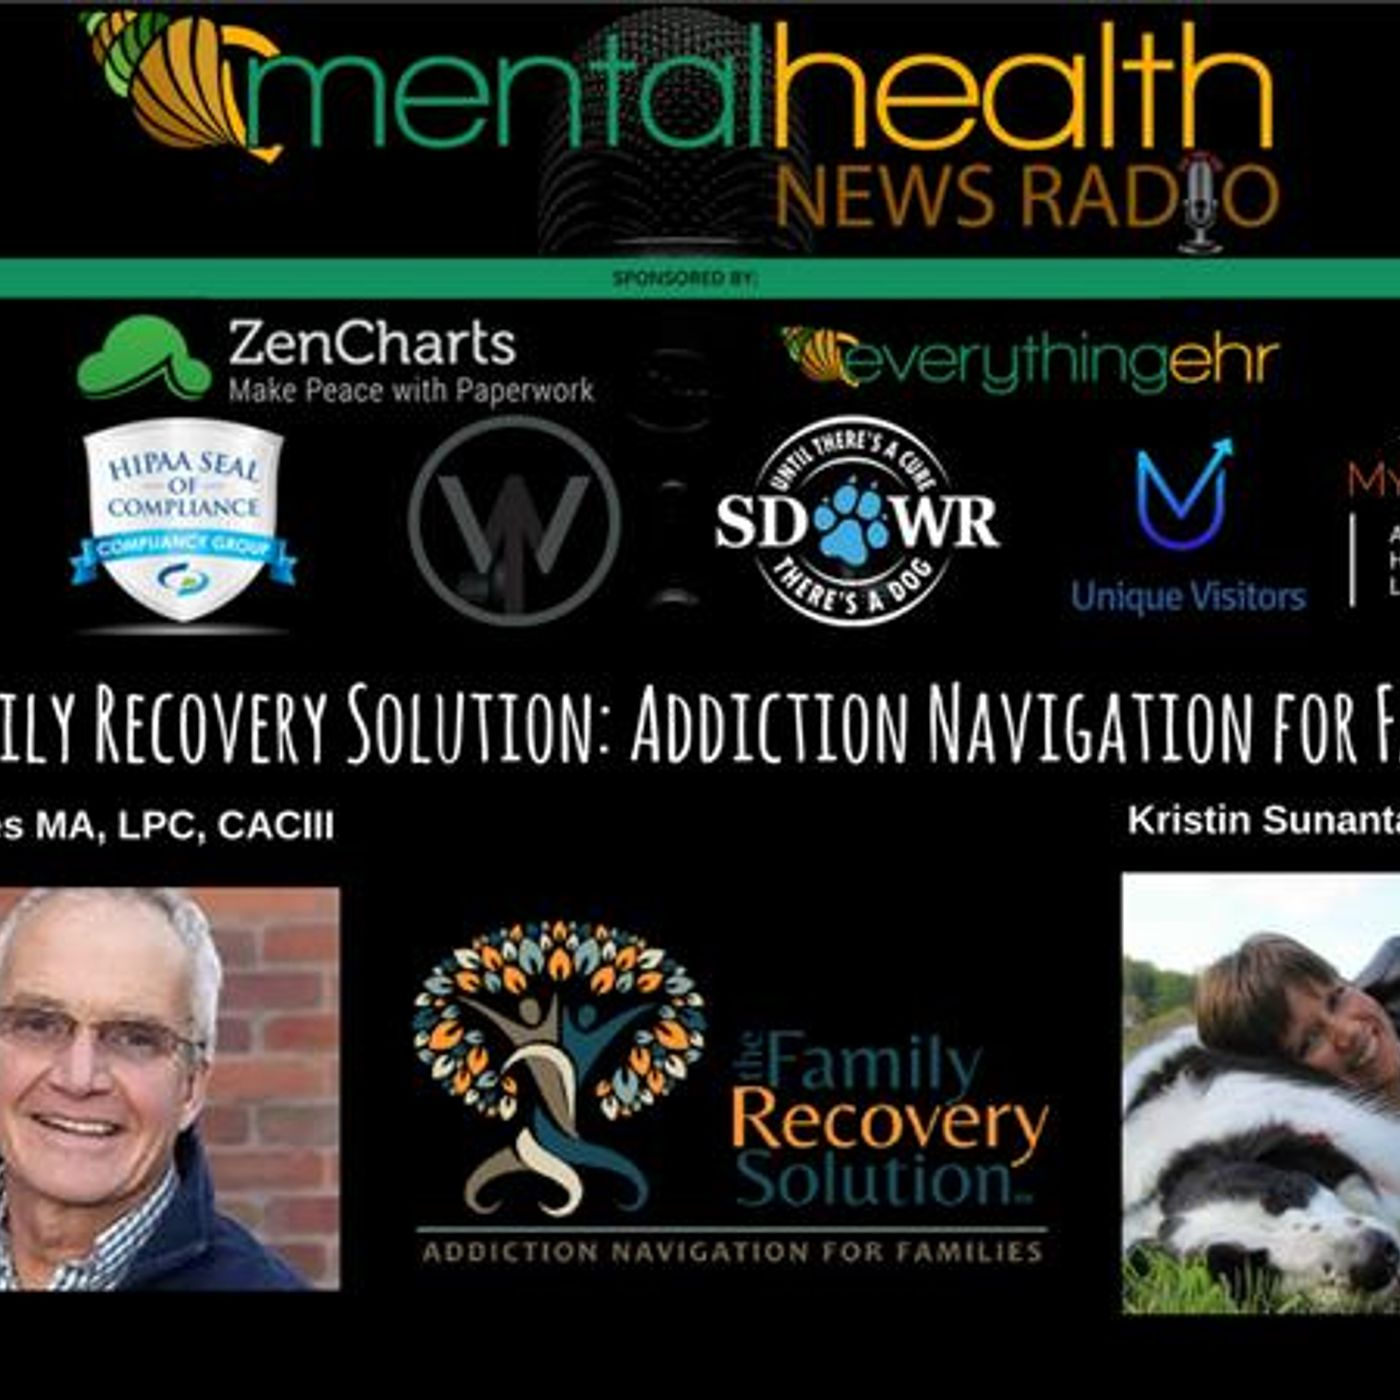 Mental Health News Radio - The Family Recovery Solution: Addiction Navigation for Families